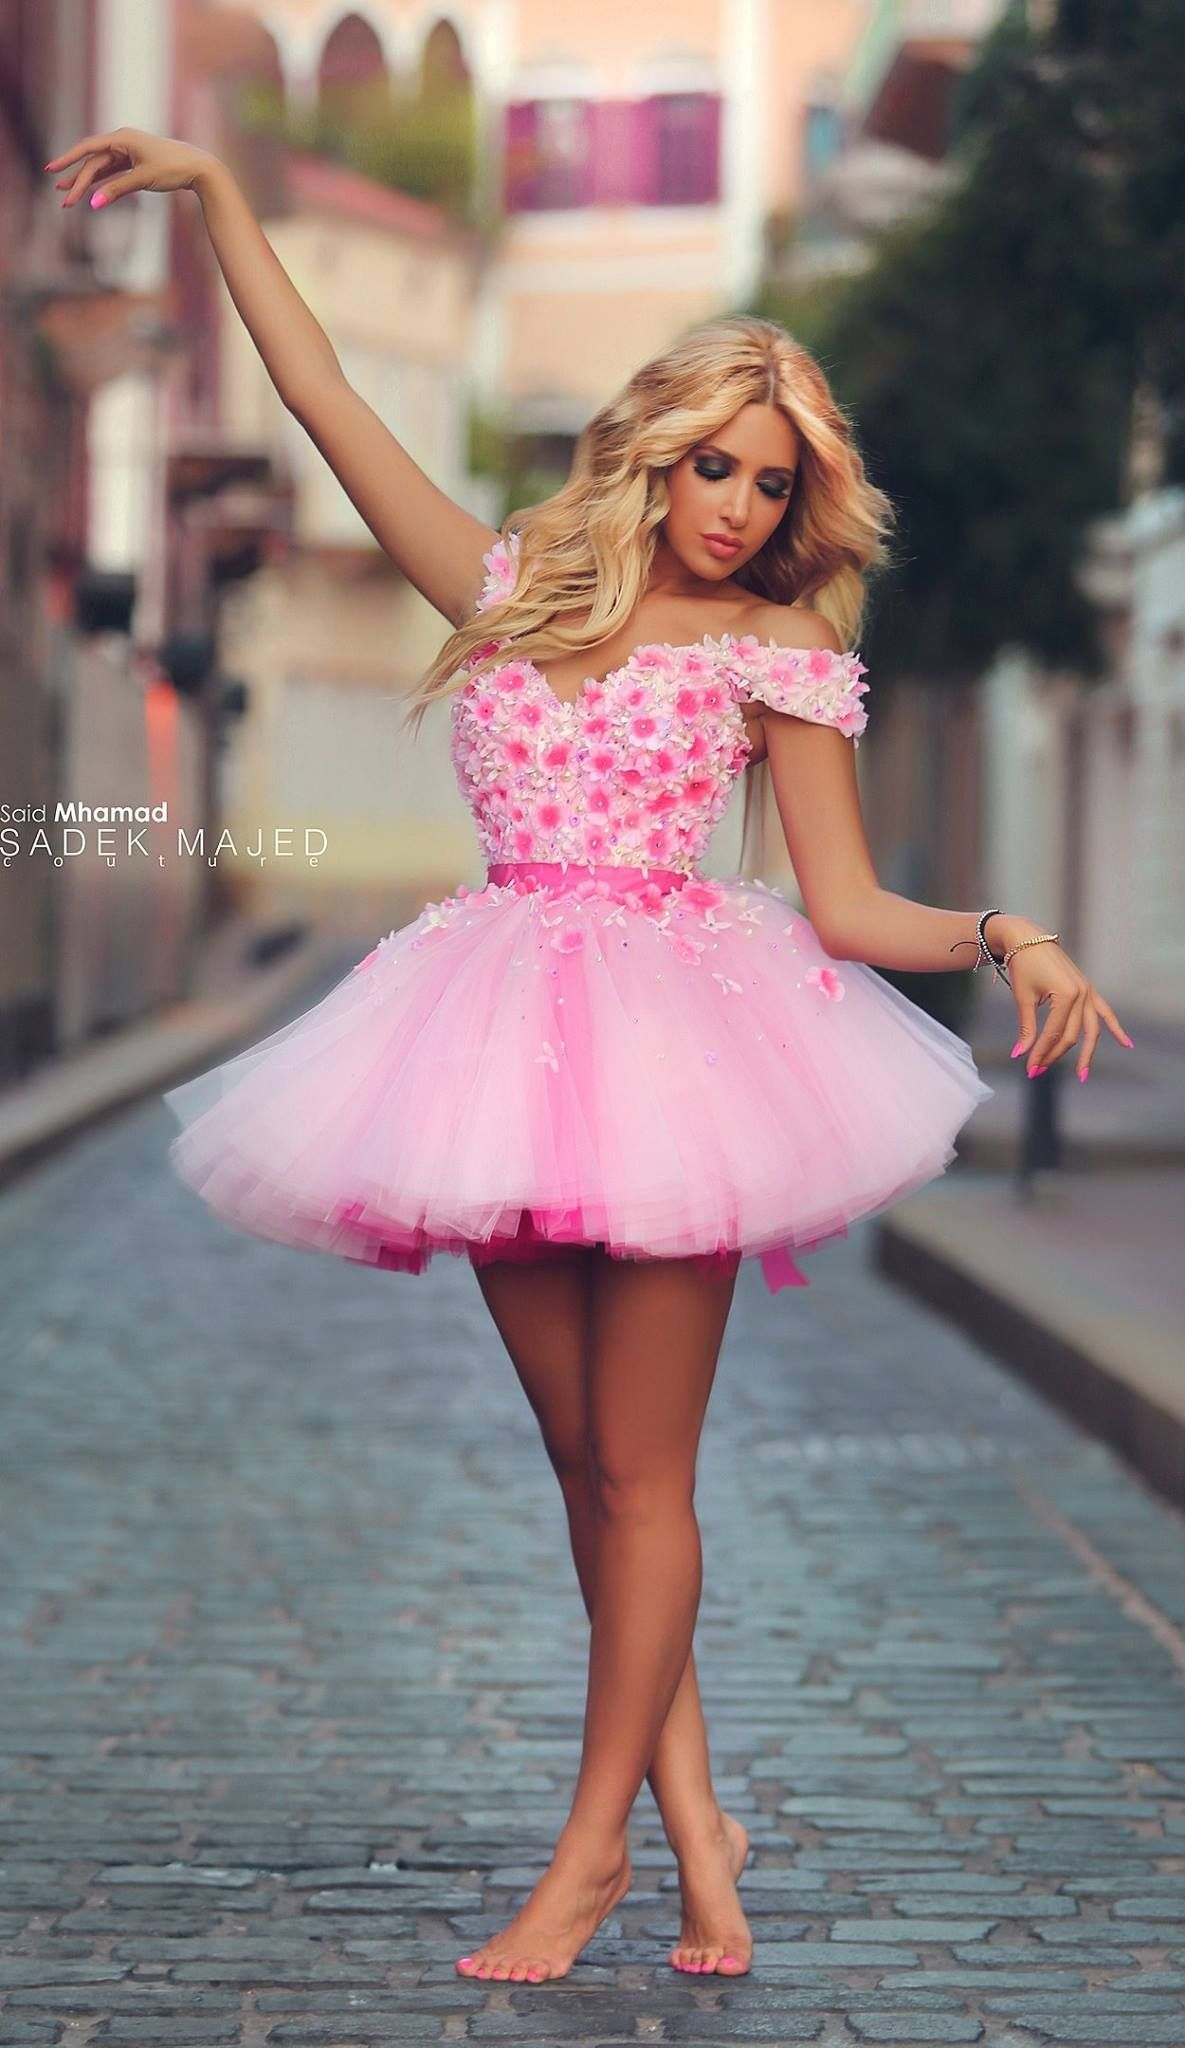 Very nice pink dress | batas mas | Pinterest | Diseñadores de moda ...